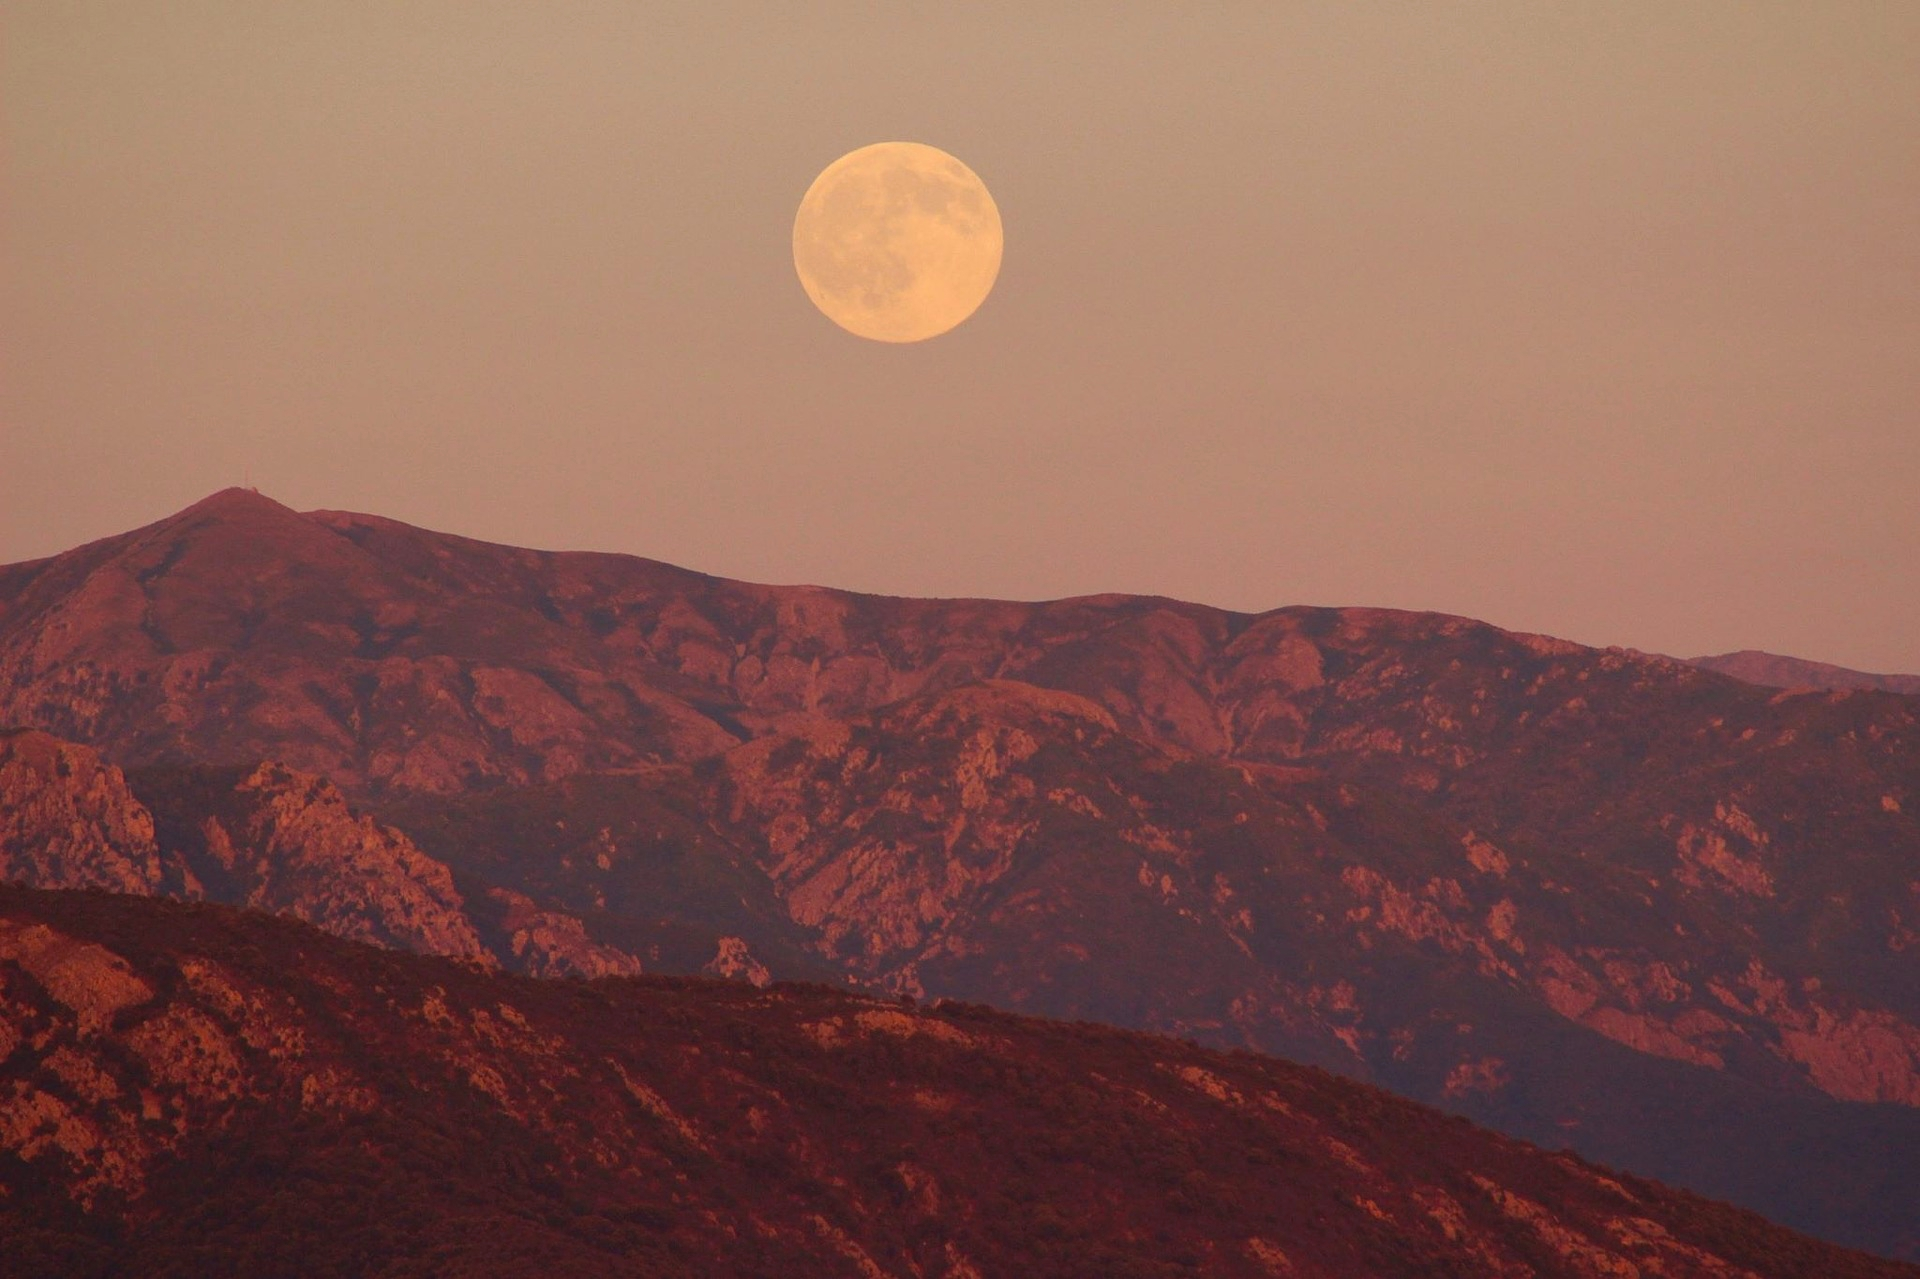 Full Pink Moon over mountains